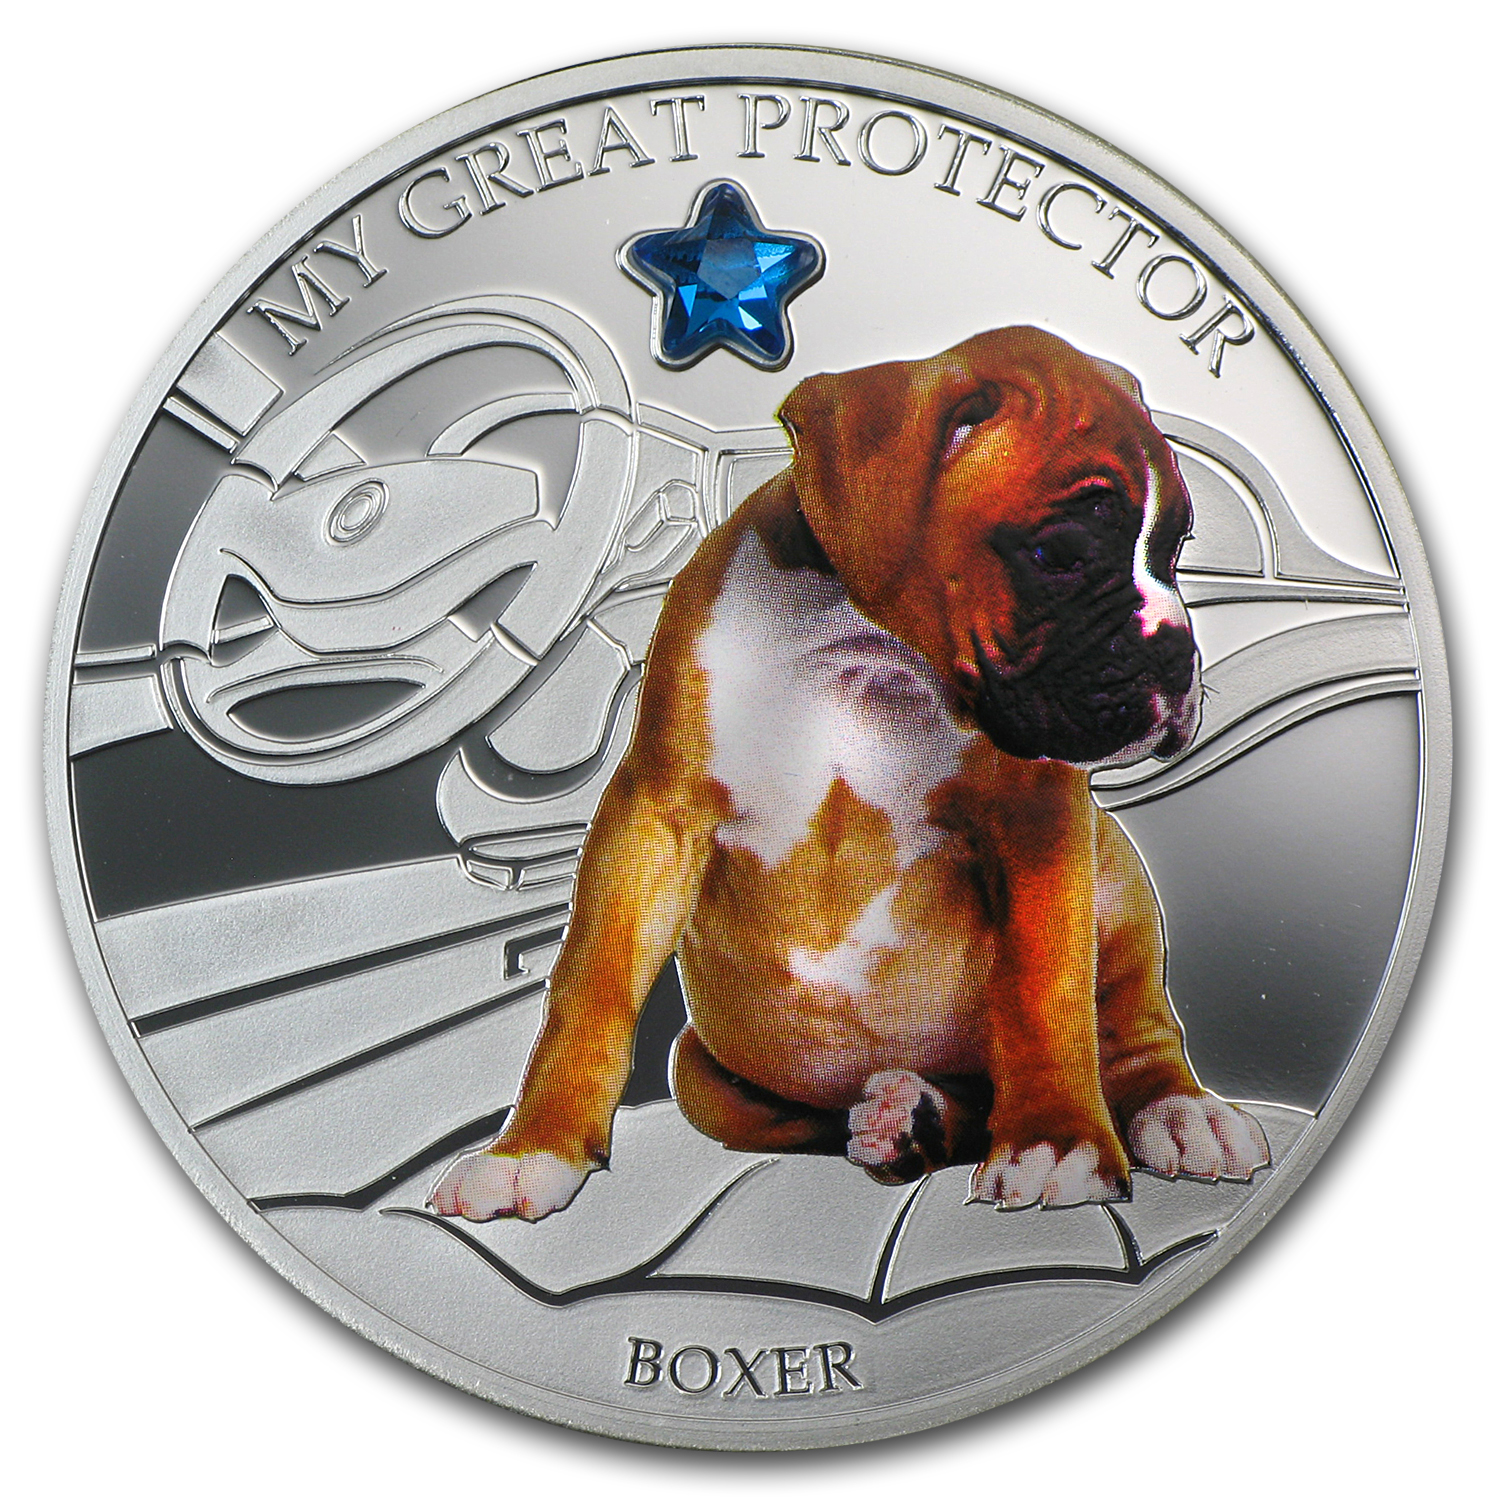 2013 Fiji Silver Dogs & Cats Series My Great Protector Boxer